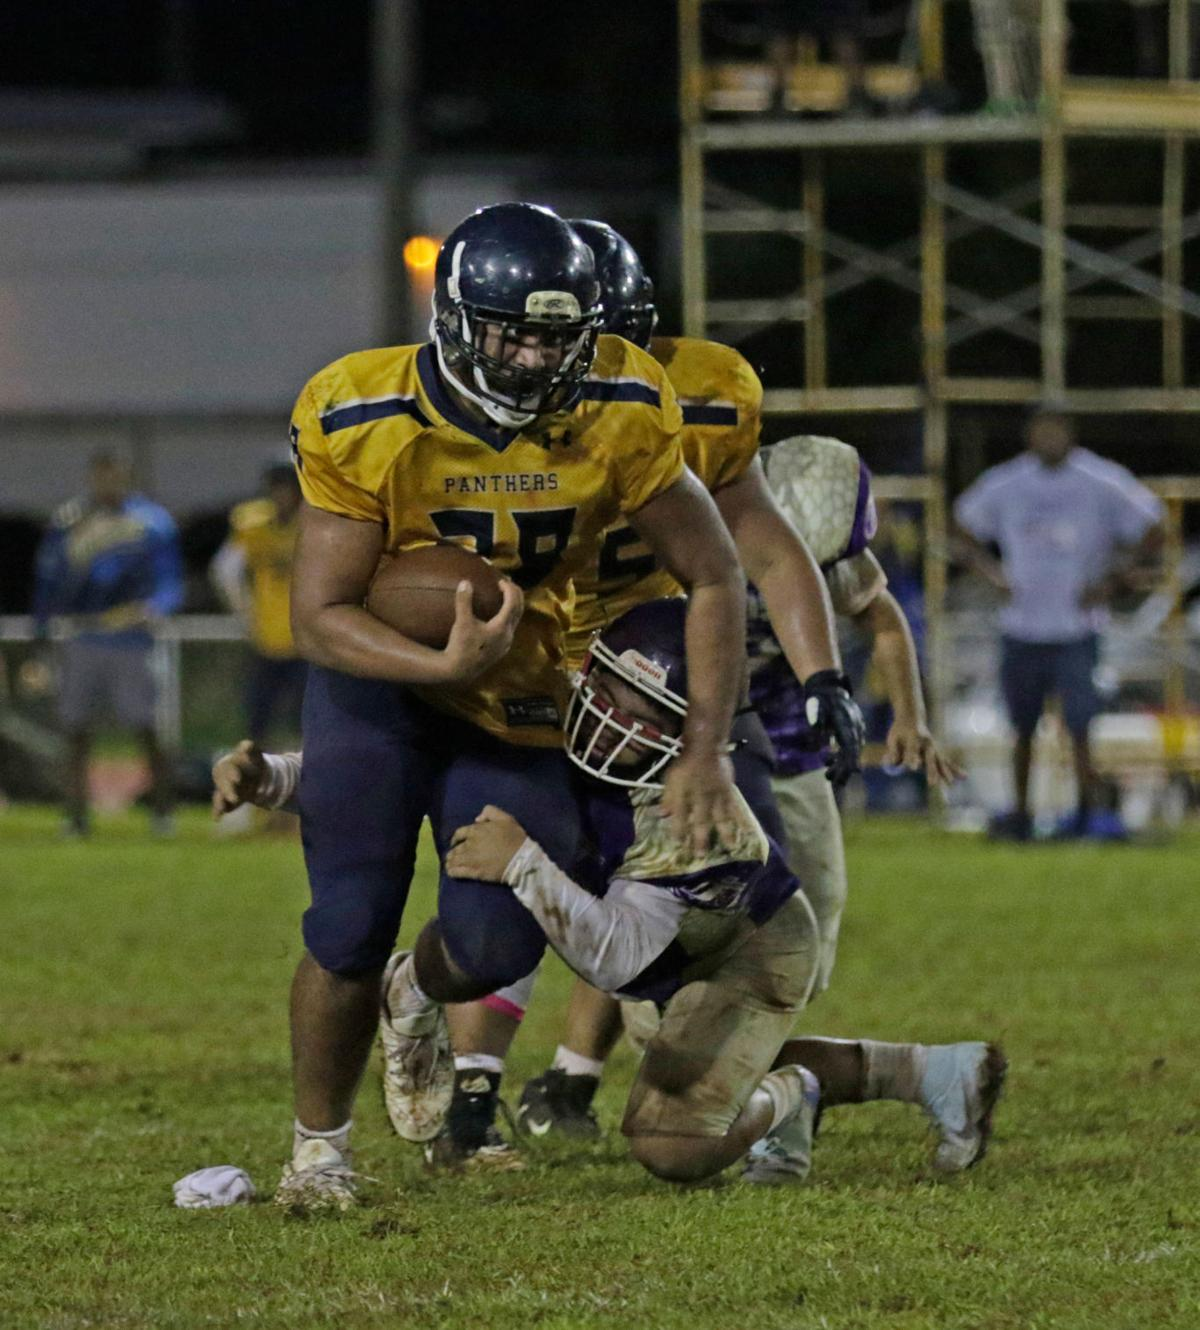 Geckos beat Panthers in semifinals 20-7